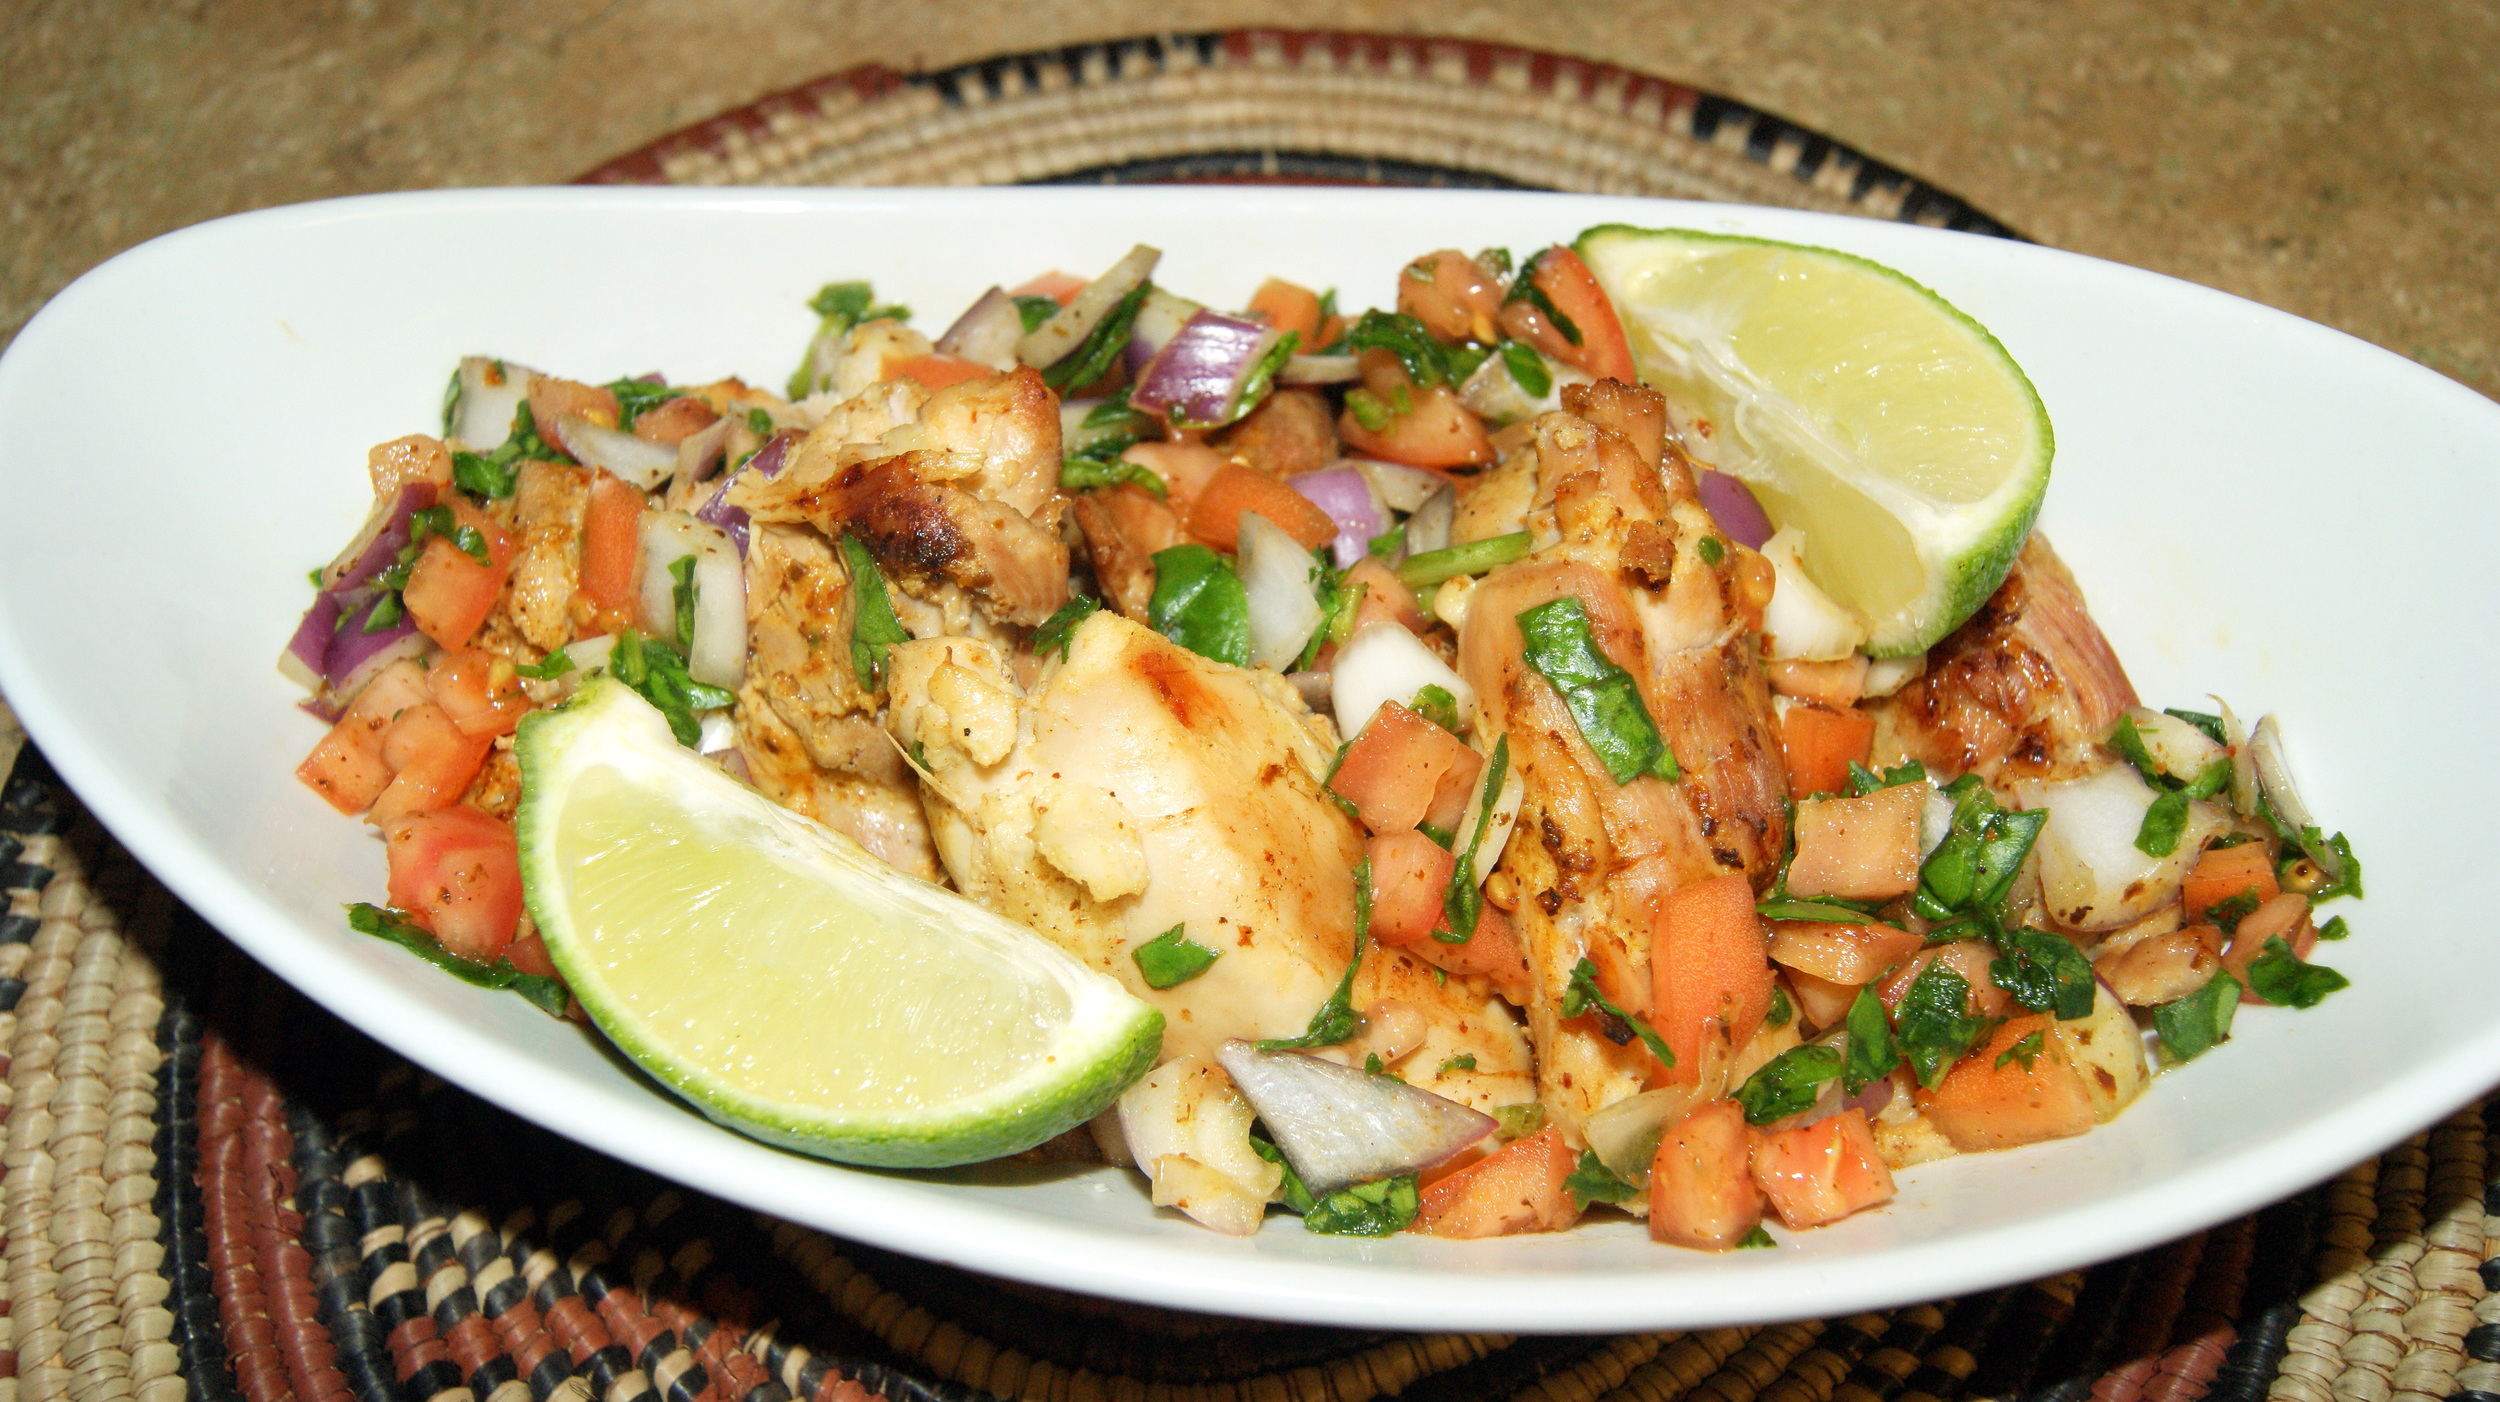 Baked Chicken with Homemade Salsa and Lime